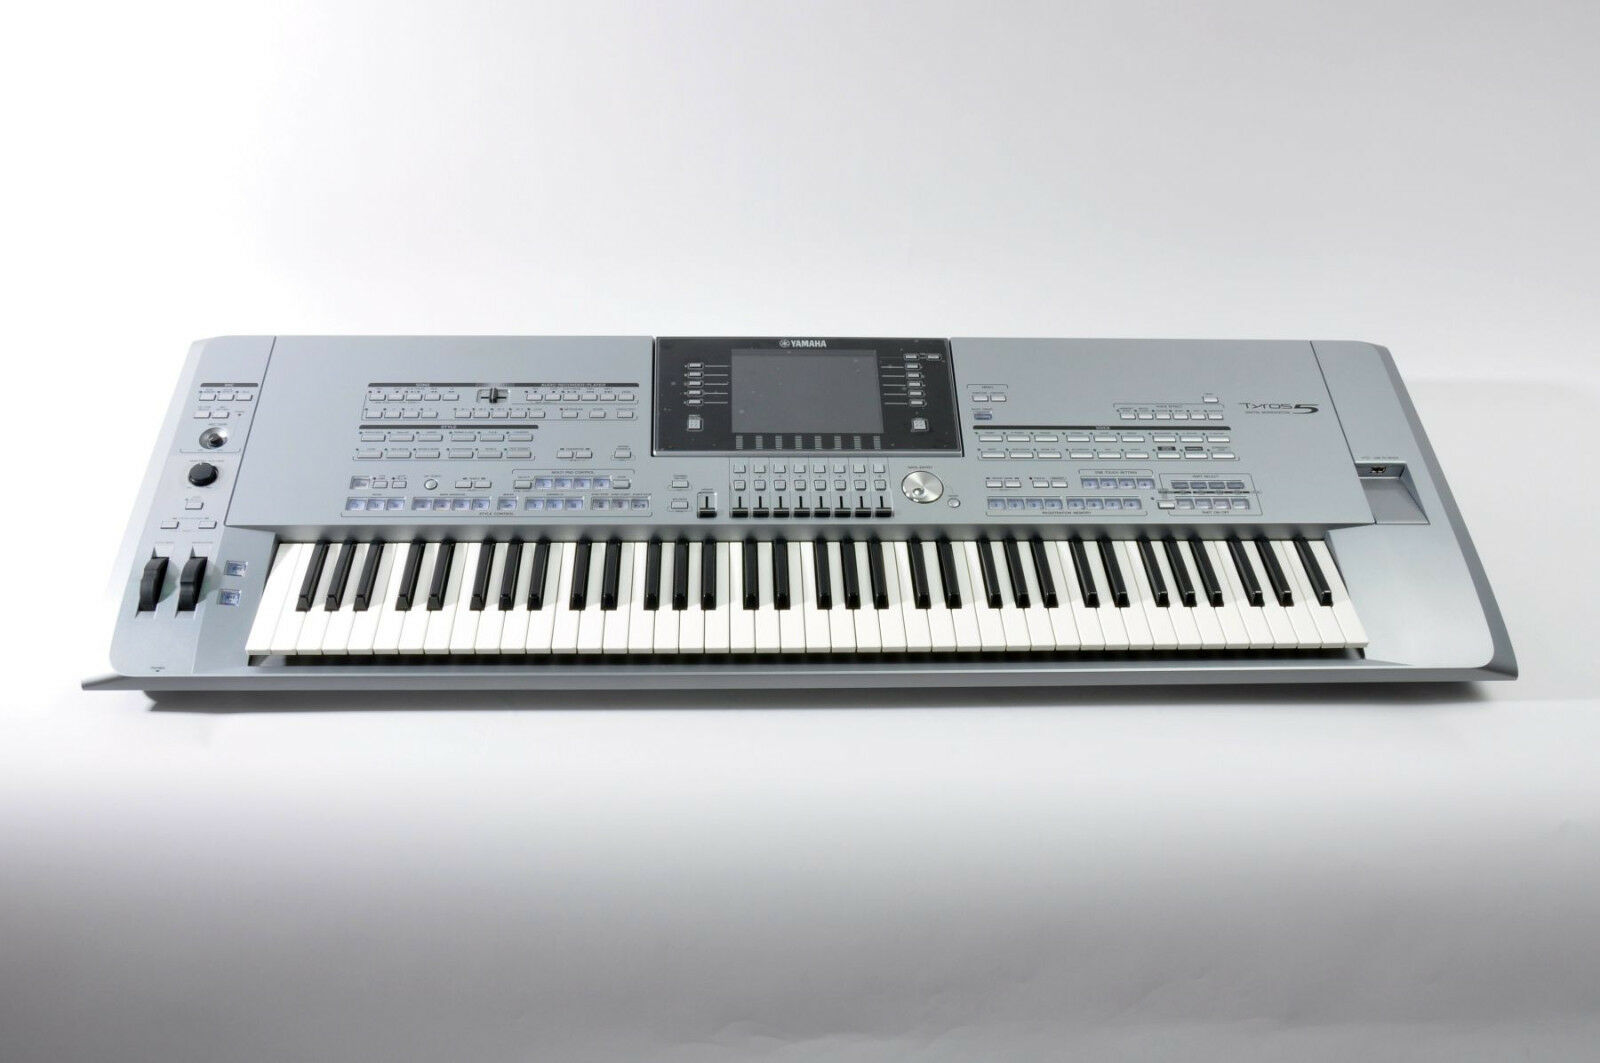 yamaha tyros 5 keyboard 76 vom fachgesch ft in top zustand. Black Bedroom Furniture Sets. Home Design Ideas